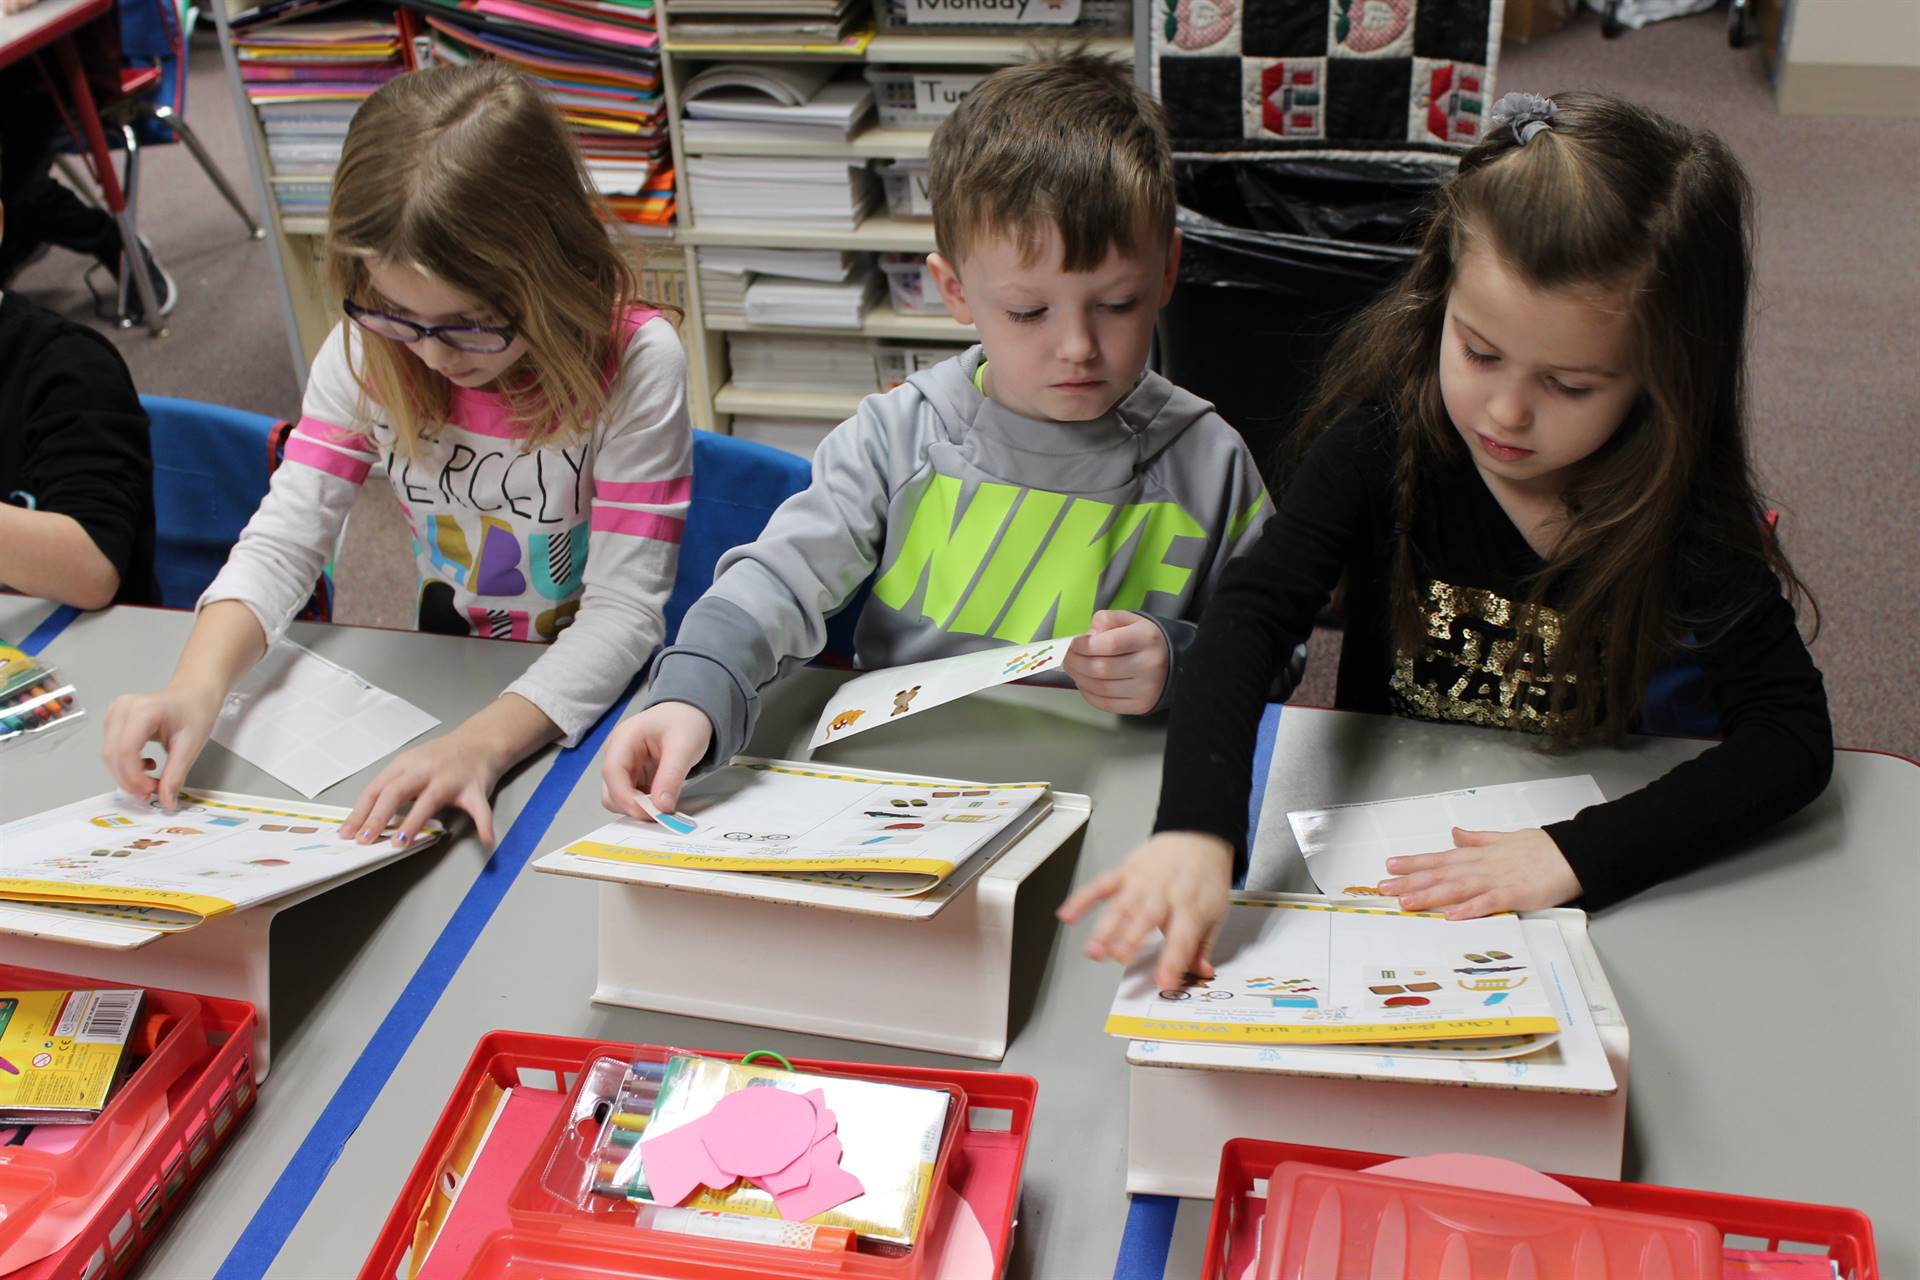 Franklin students working in their work books